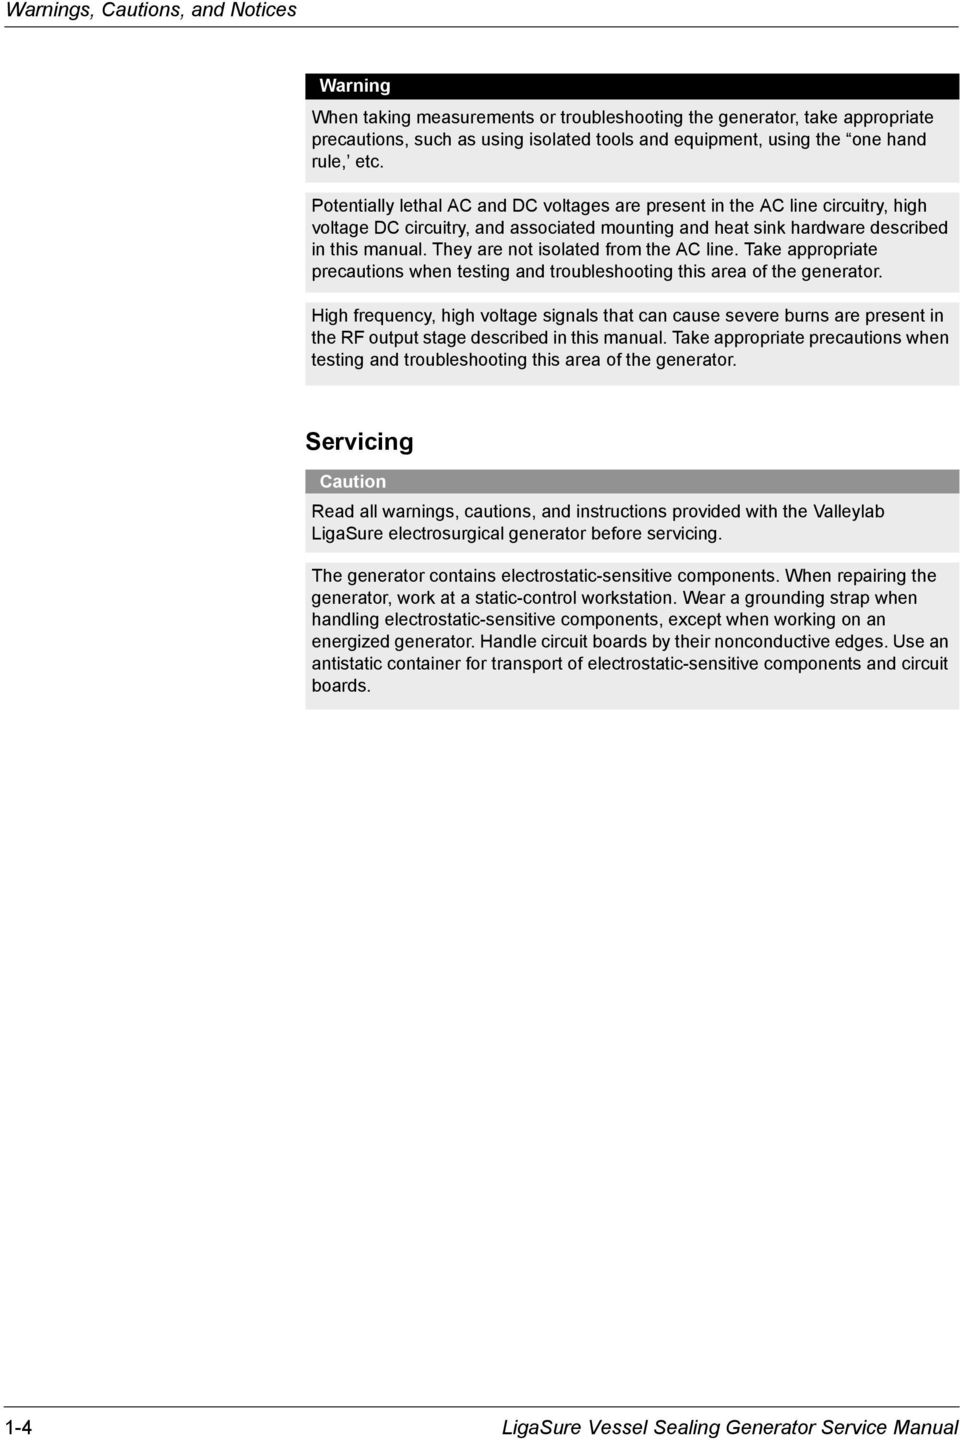 Service Manual. LigaSure Vessel Sealing Generator - PDF on